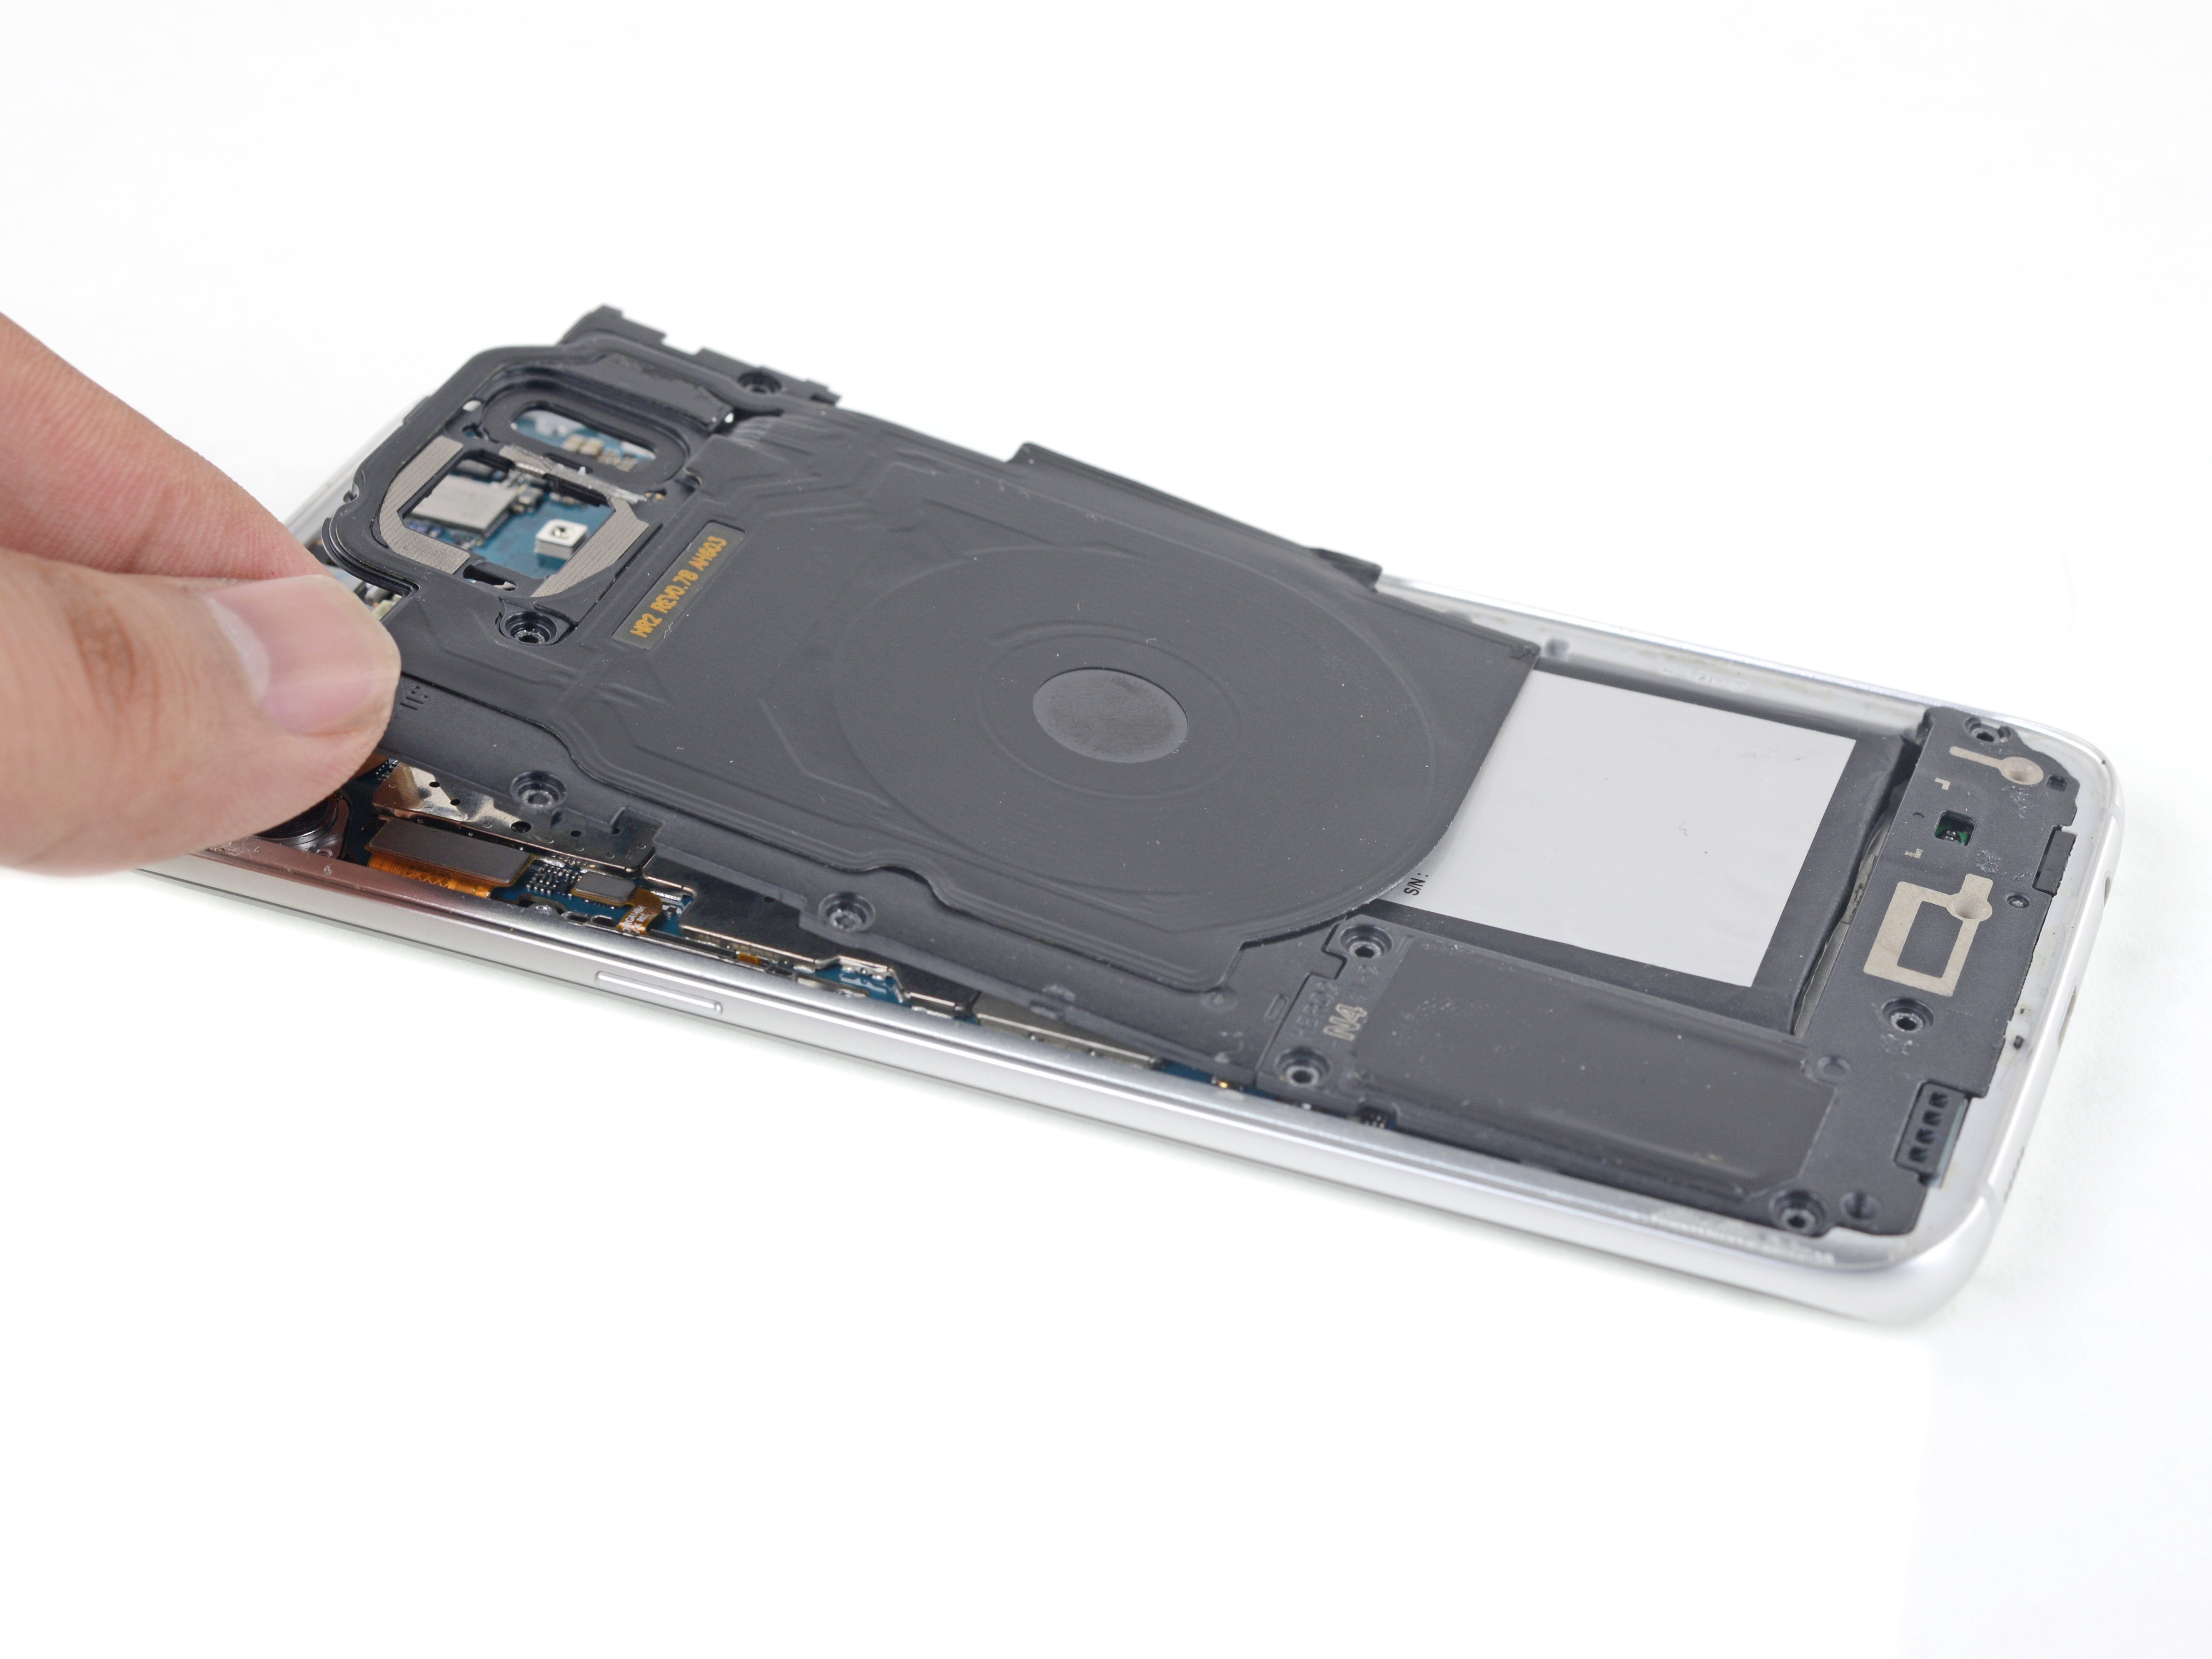 Samsung Galaxy S7 Edge Nfc Antenna And Charging Coil Assembly Replacement Ifixit Repair Guide